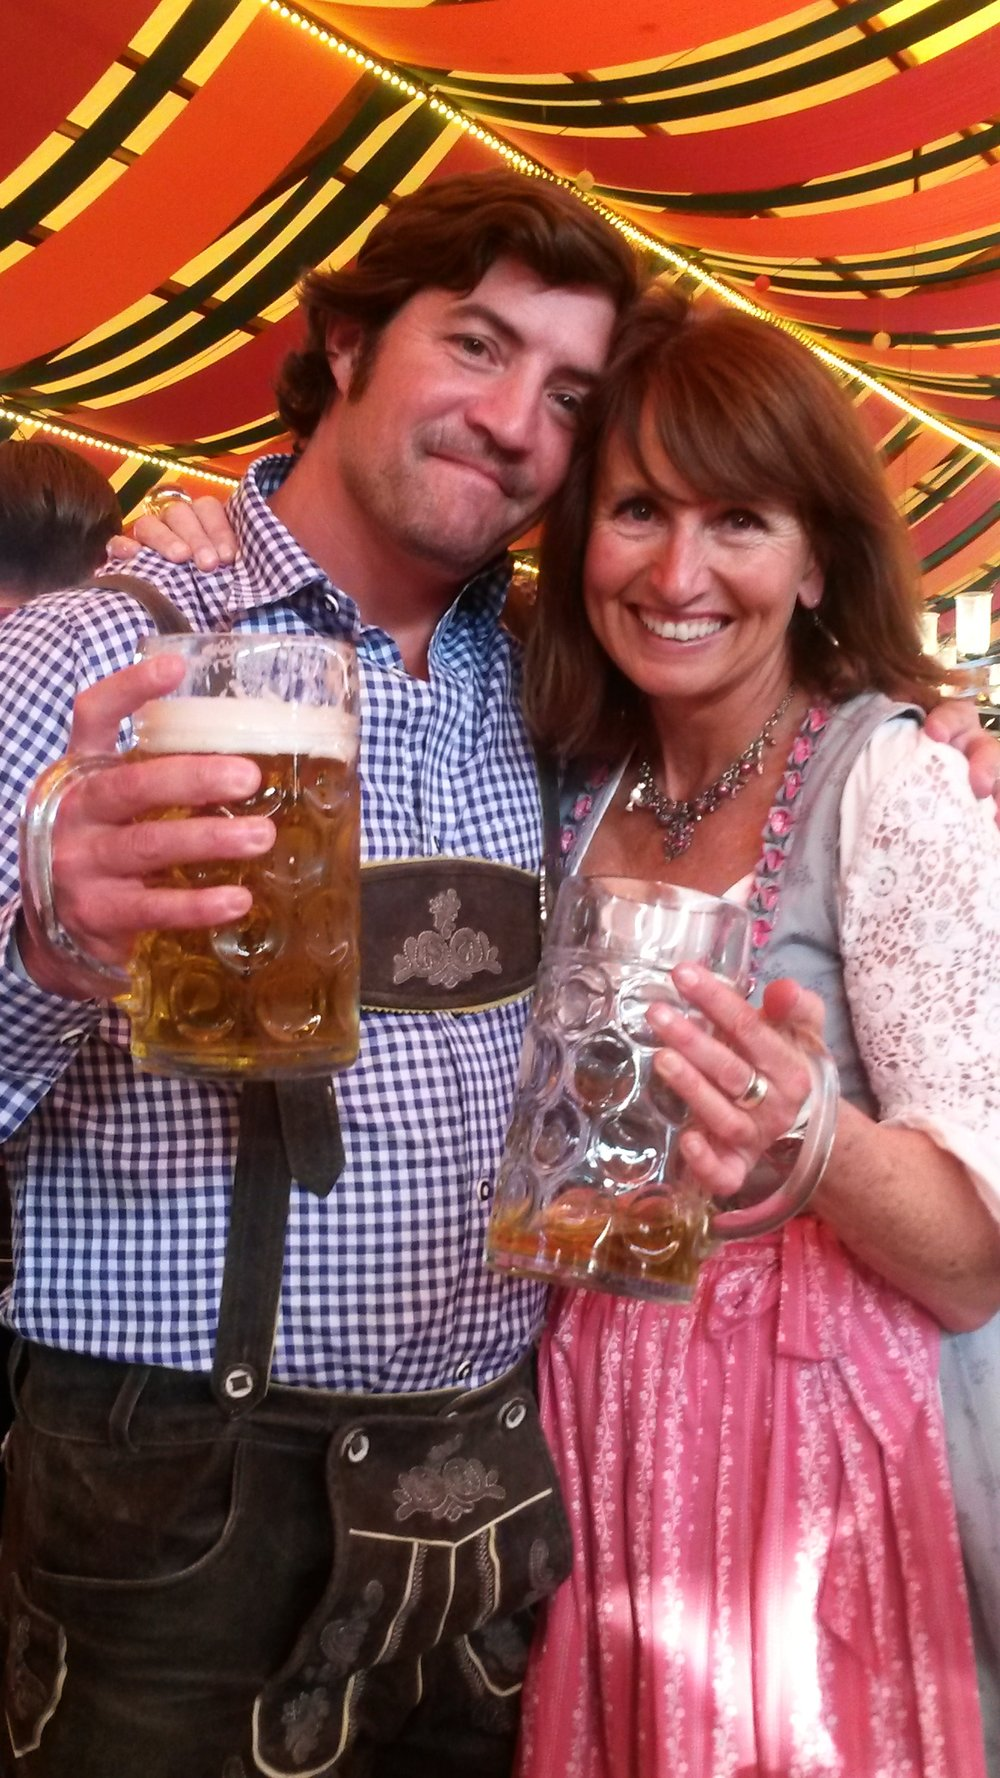 Maxine with a tourist at Oktoberfest. Contact her if you're looking for a  Munich tour guide .